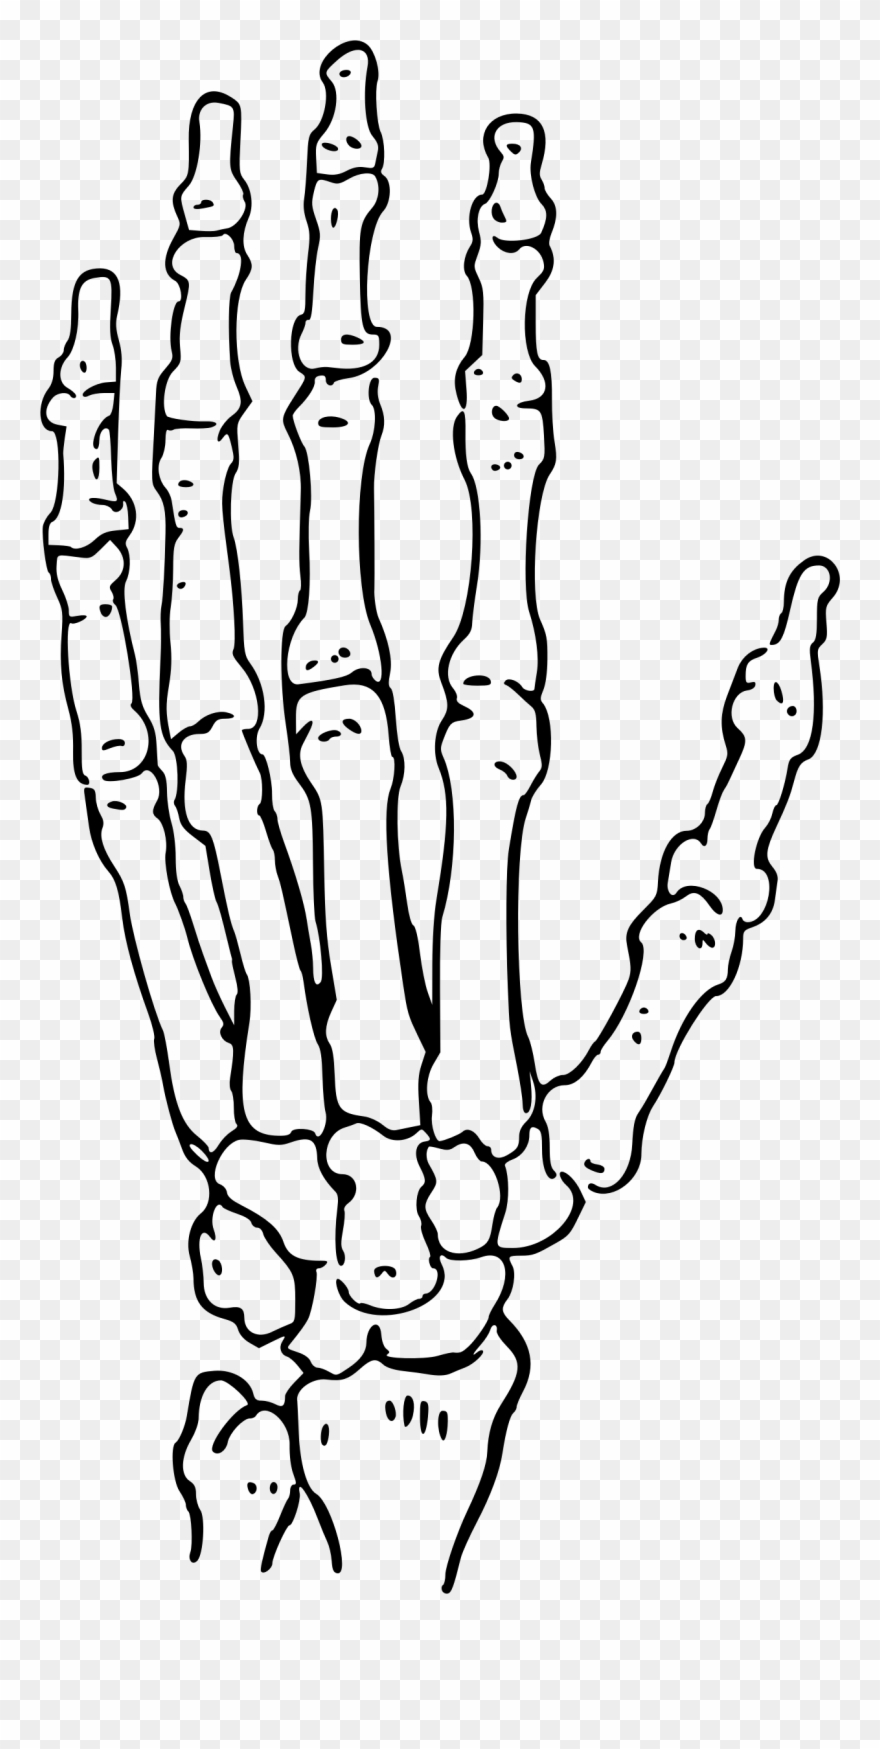 Skeleton hand clipart black and white download Bones Of The Hand Big Image Png - Black And White Skeleton ... black and white download